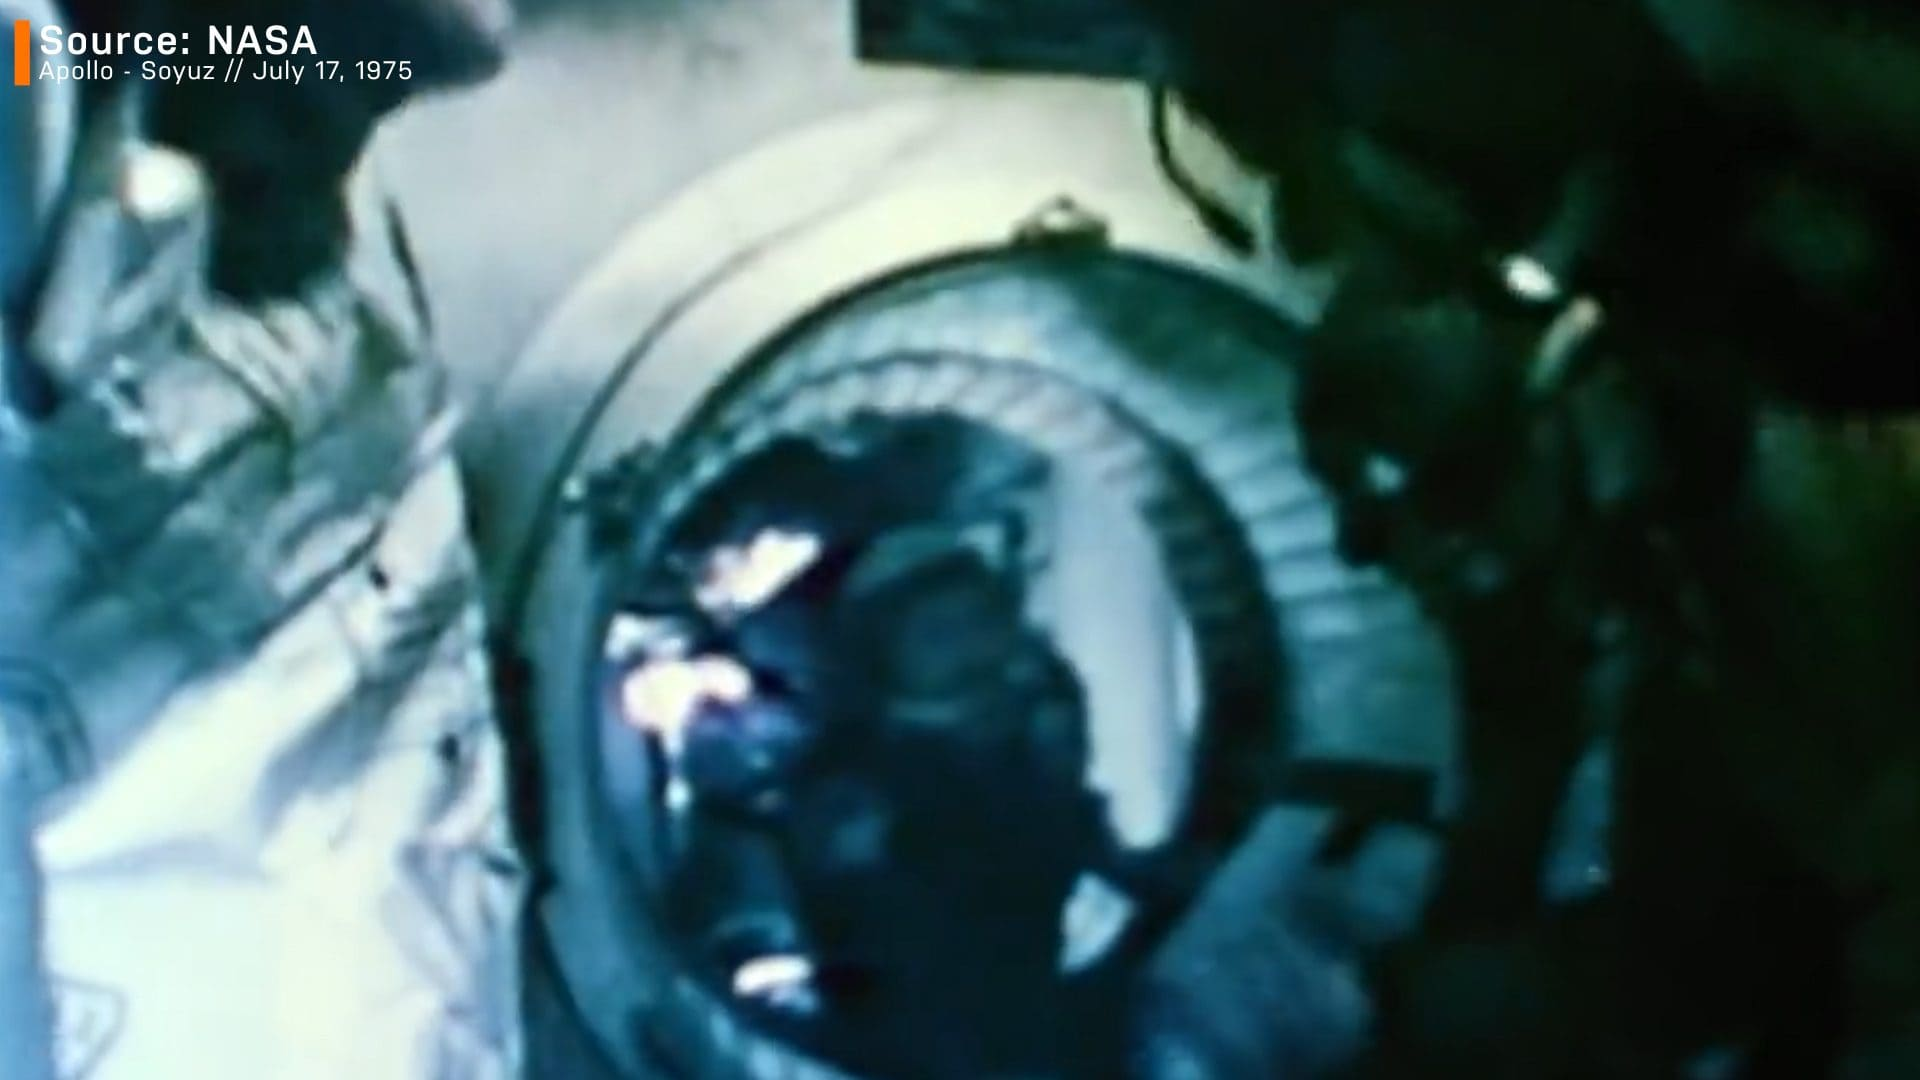 Apollo - Soyuz mission first handshake